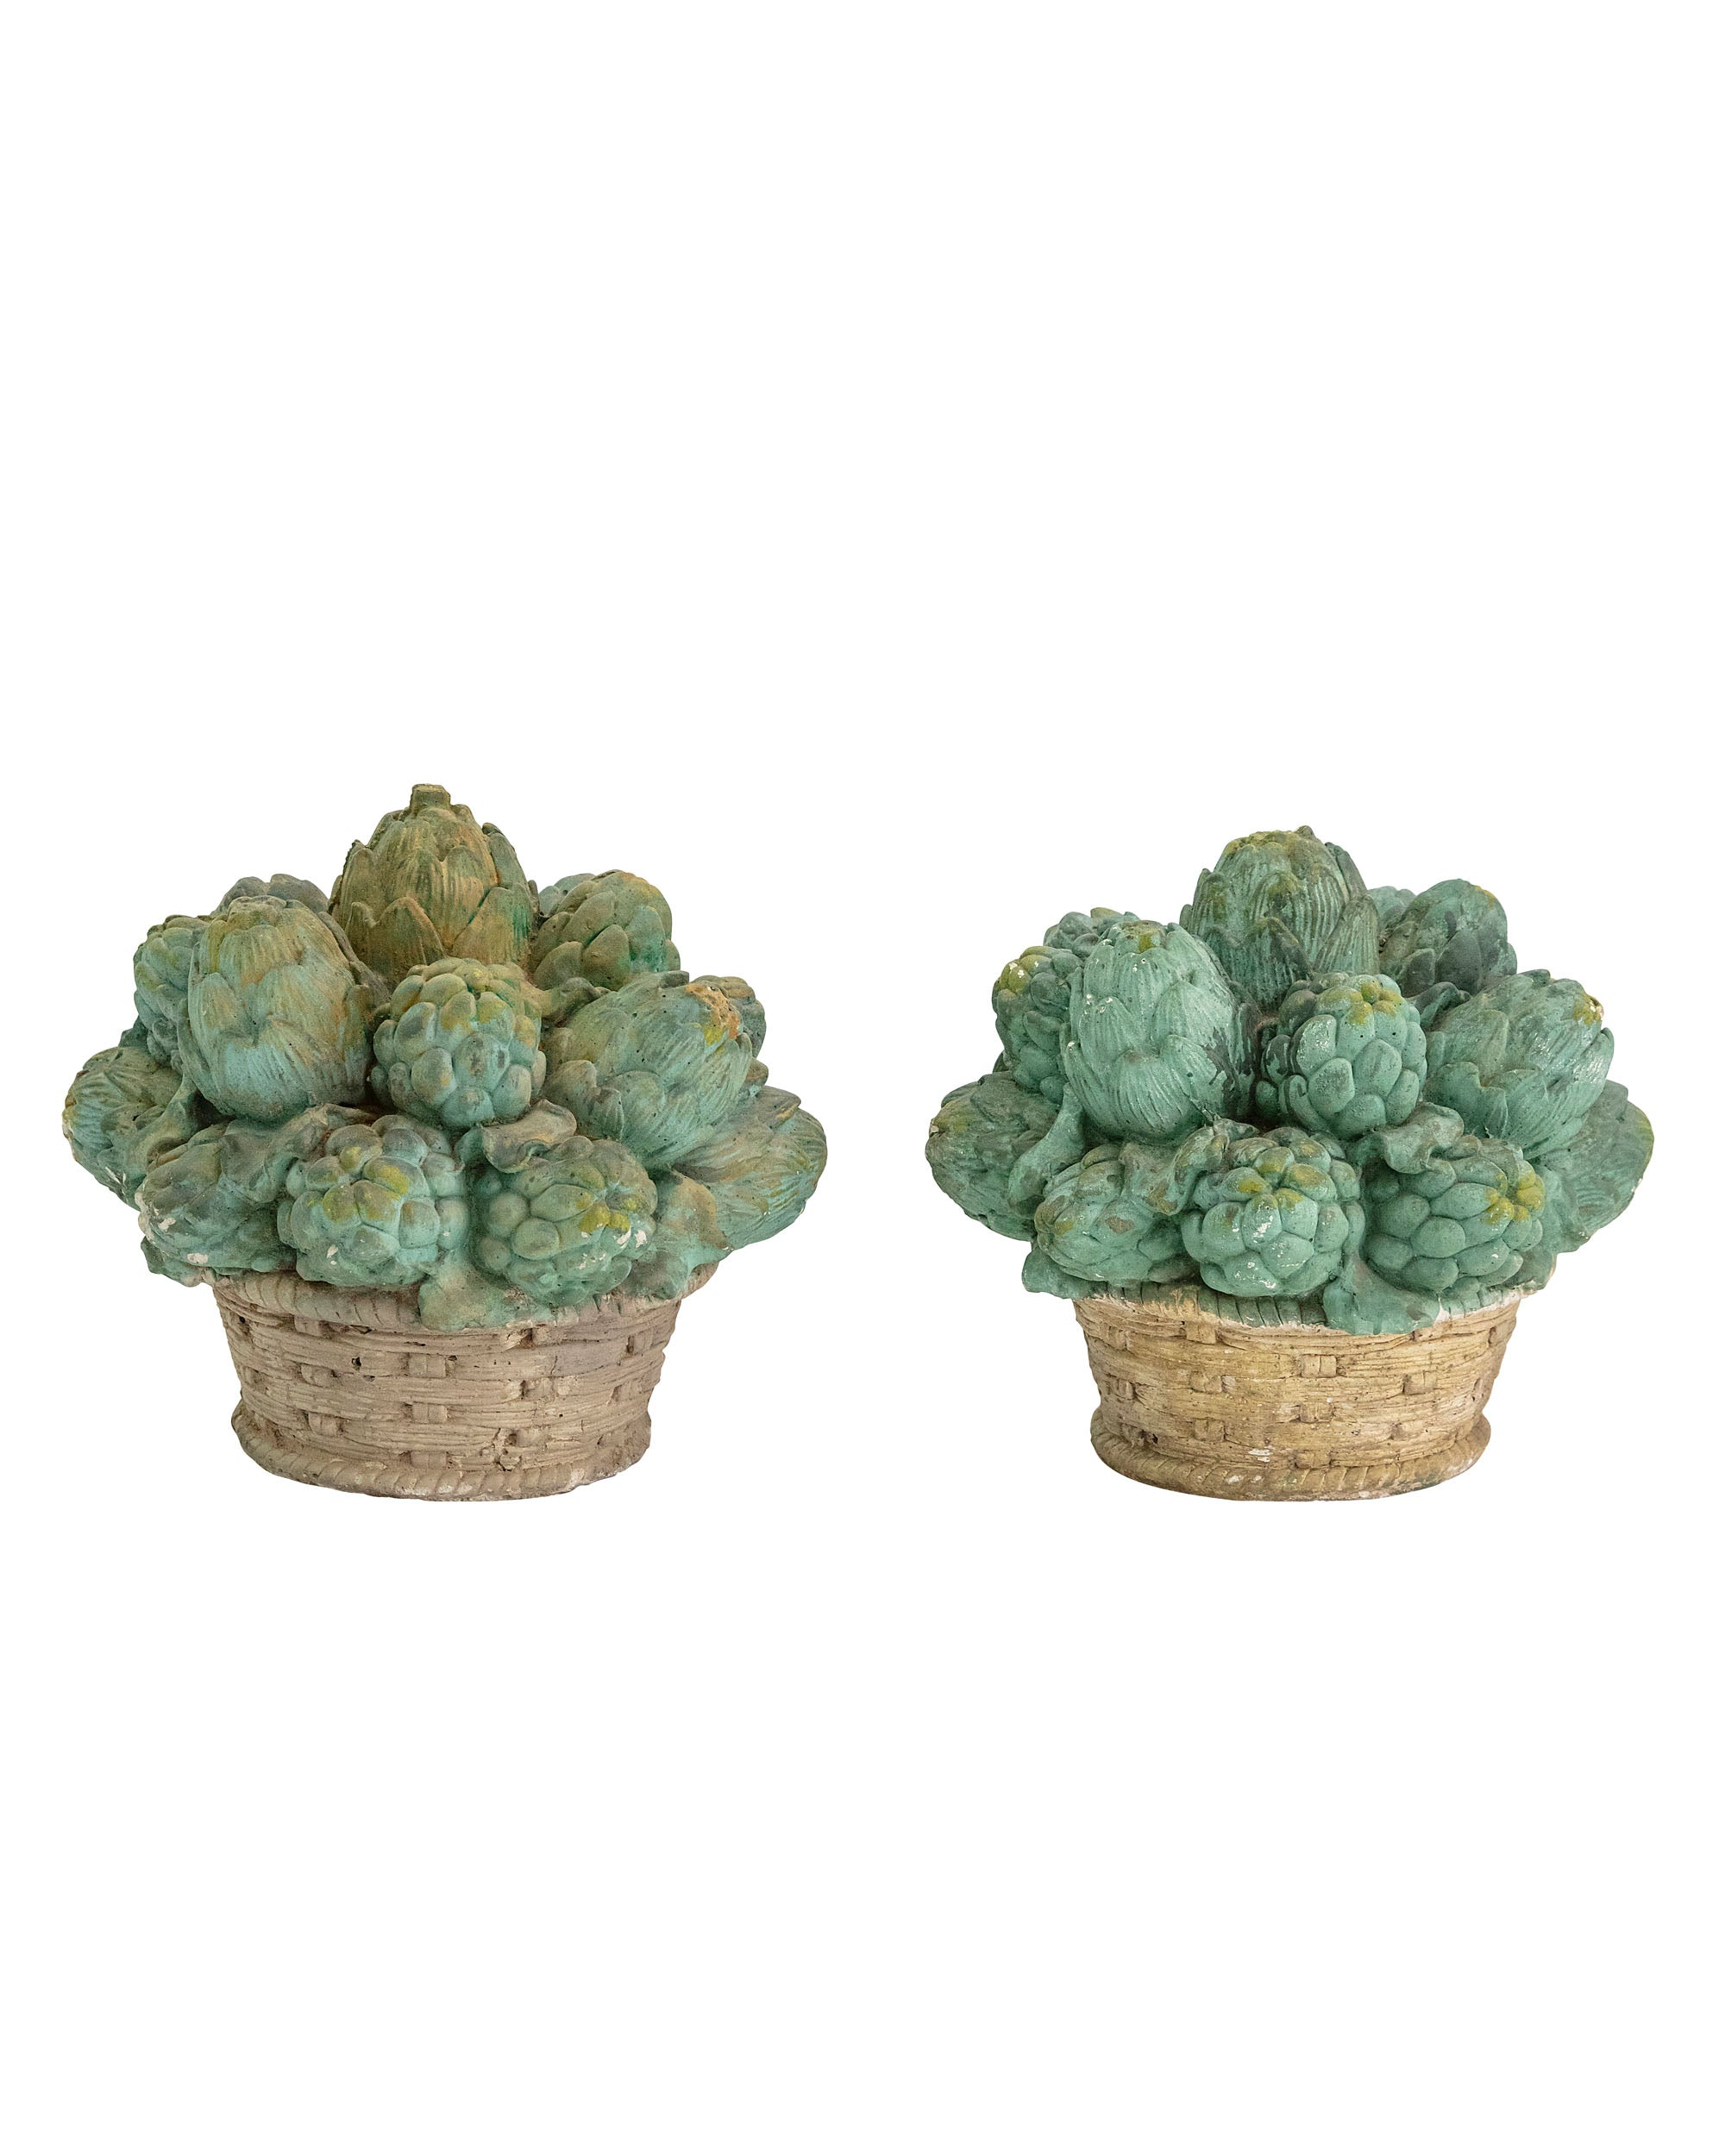 Pair of artichoke baskets made of cement